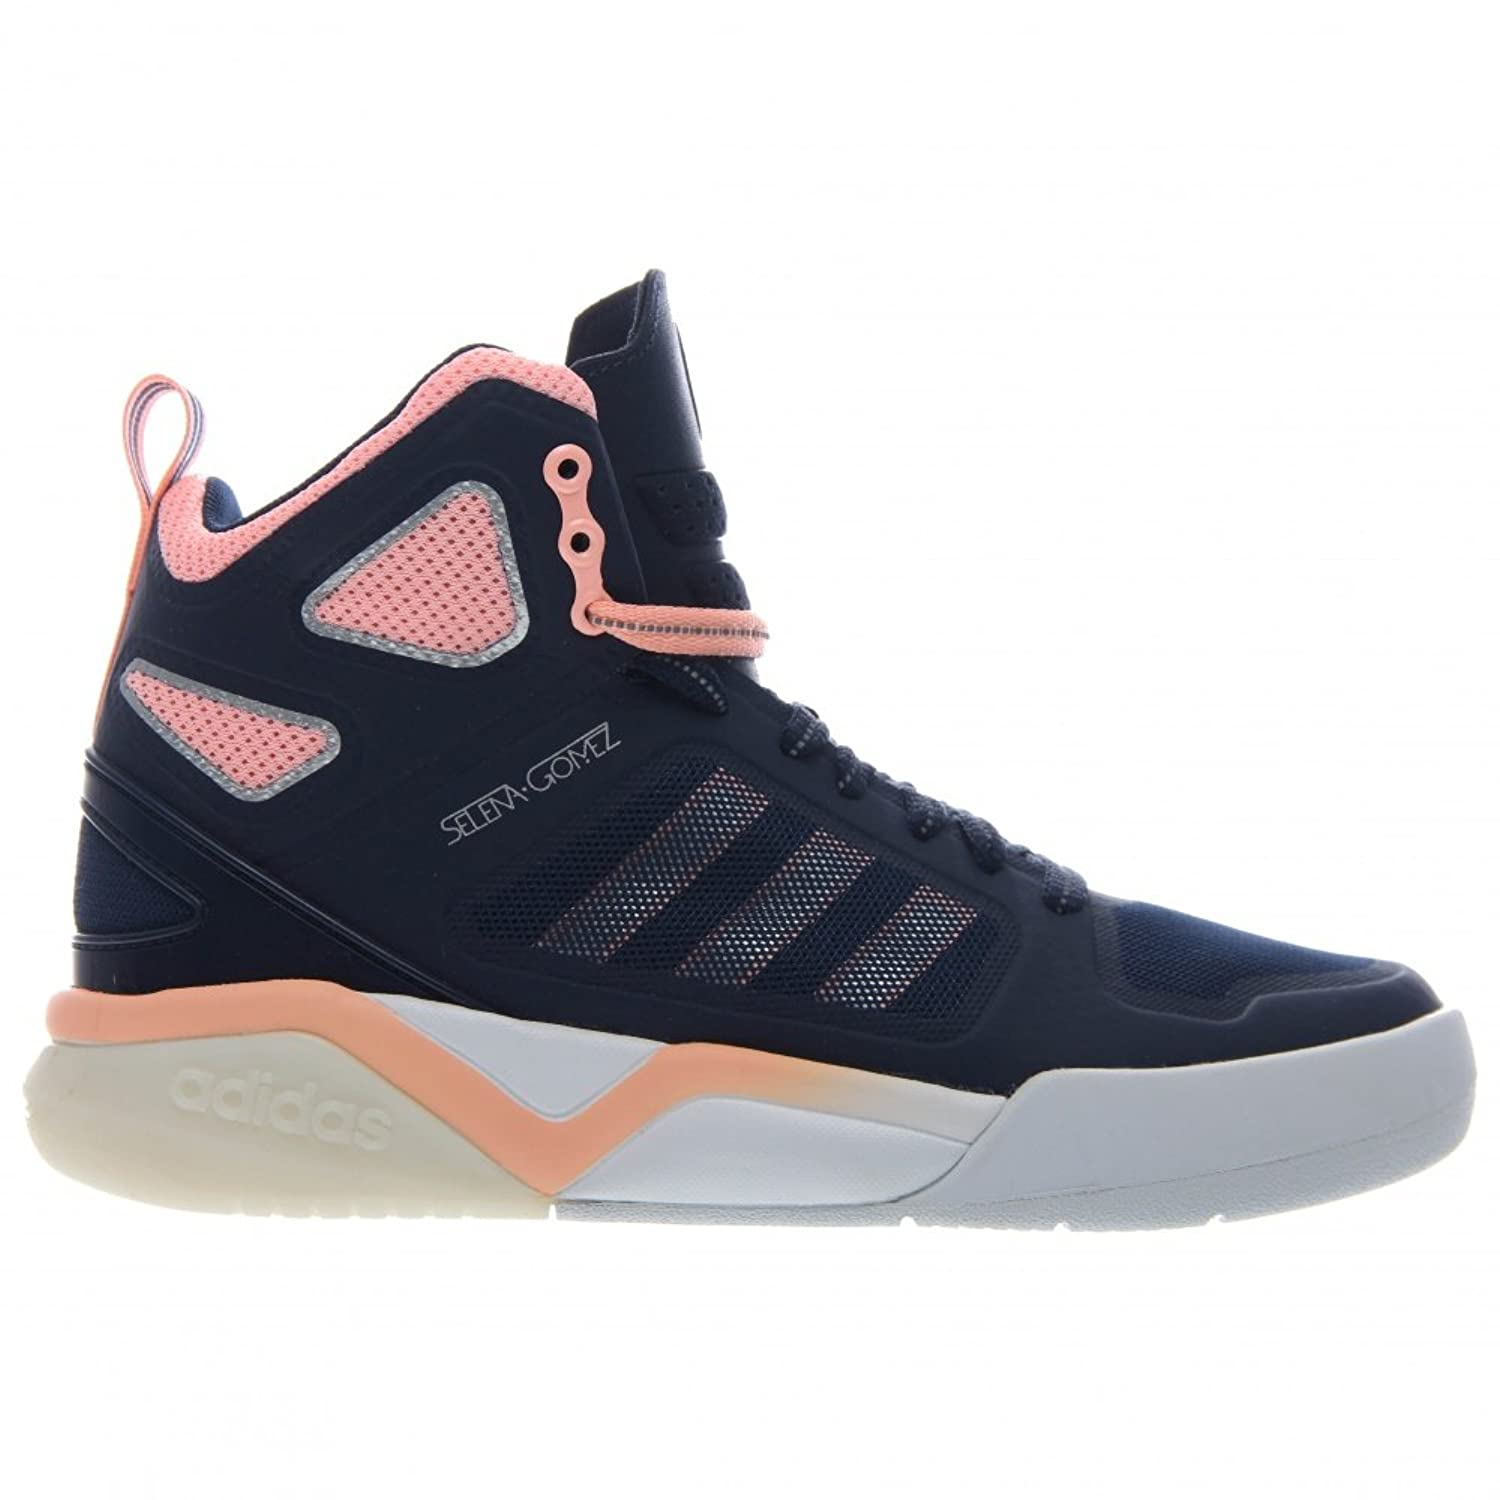 adidas Women's Neo Selina Gomez Bb95 Mid Trainers in Collegiate Navy:  Amazon.co.uk: Shoes & Bags